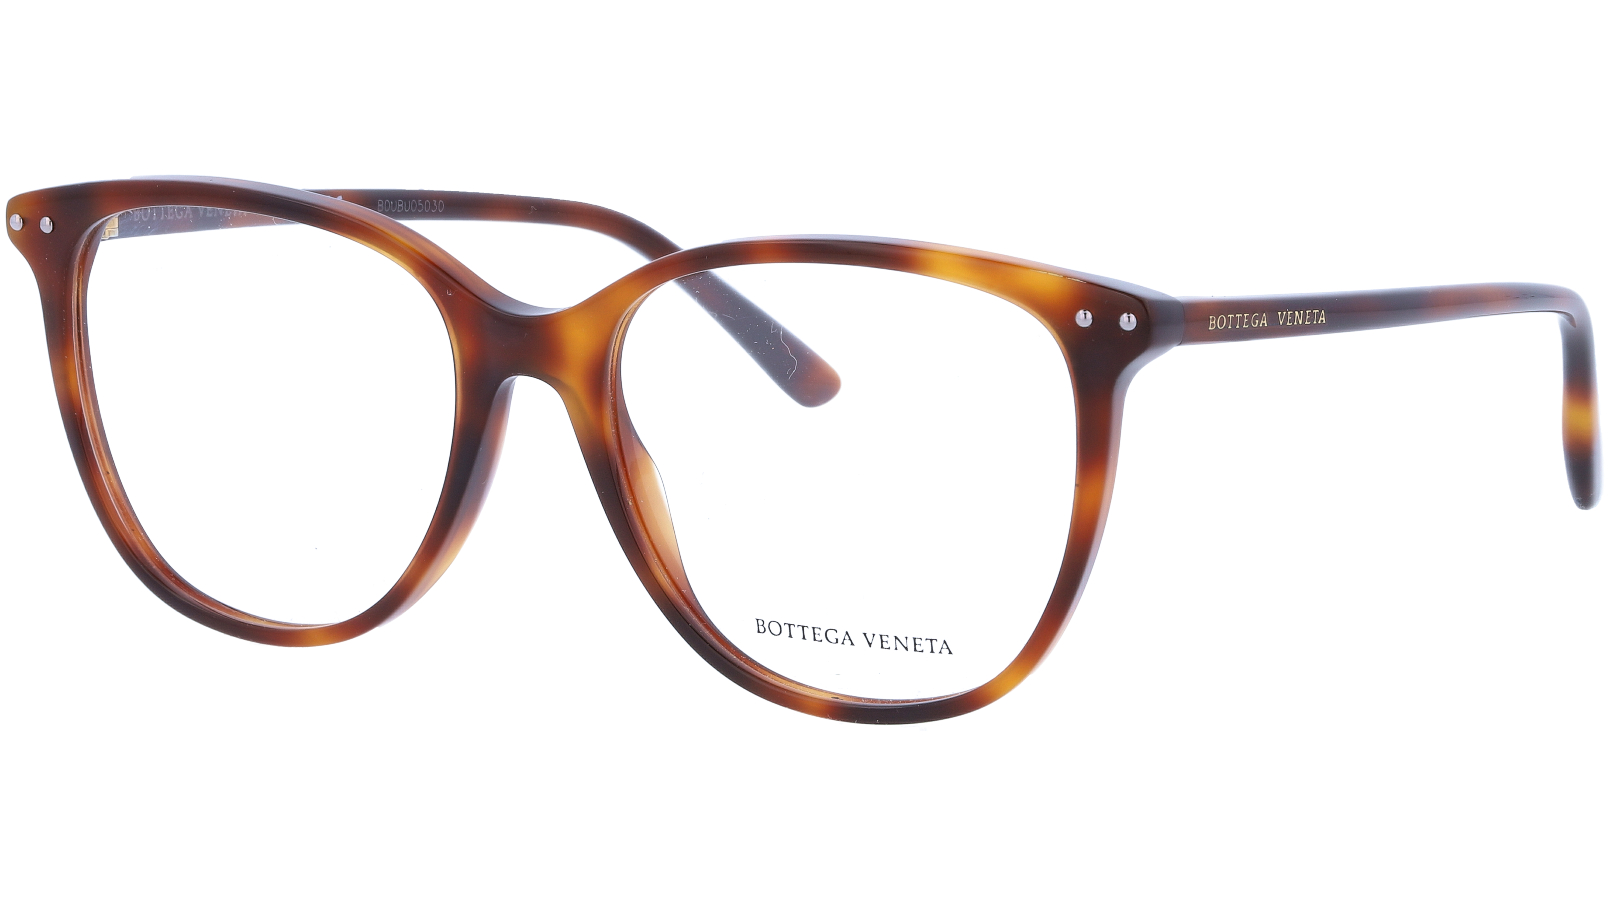 BOTTEGA VENETA BV0161O 002 52 AVANA Glasses